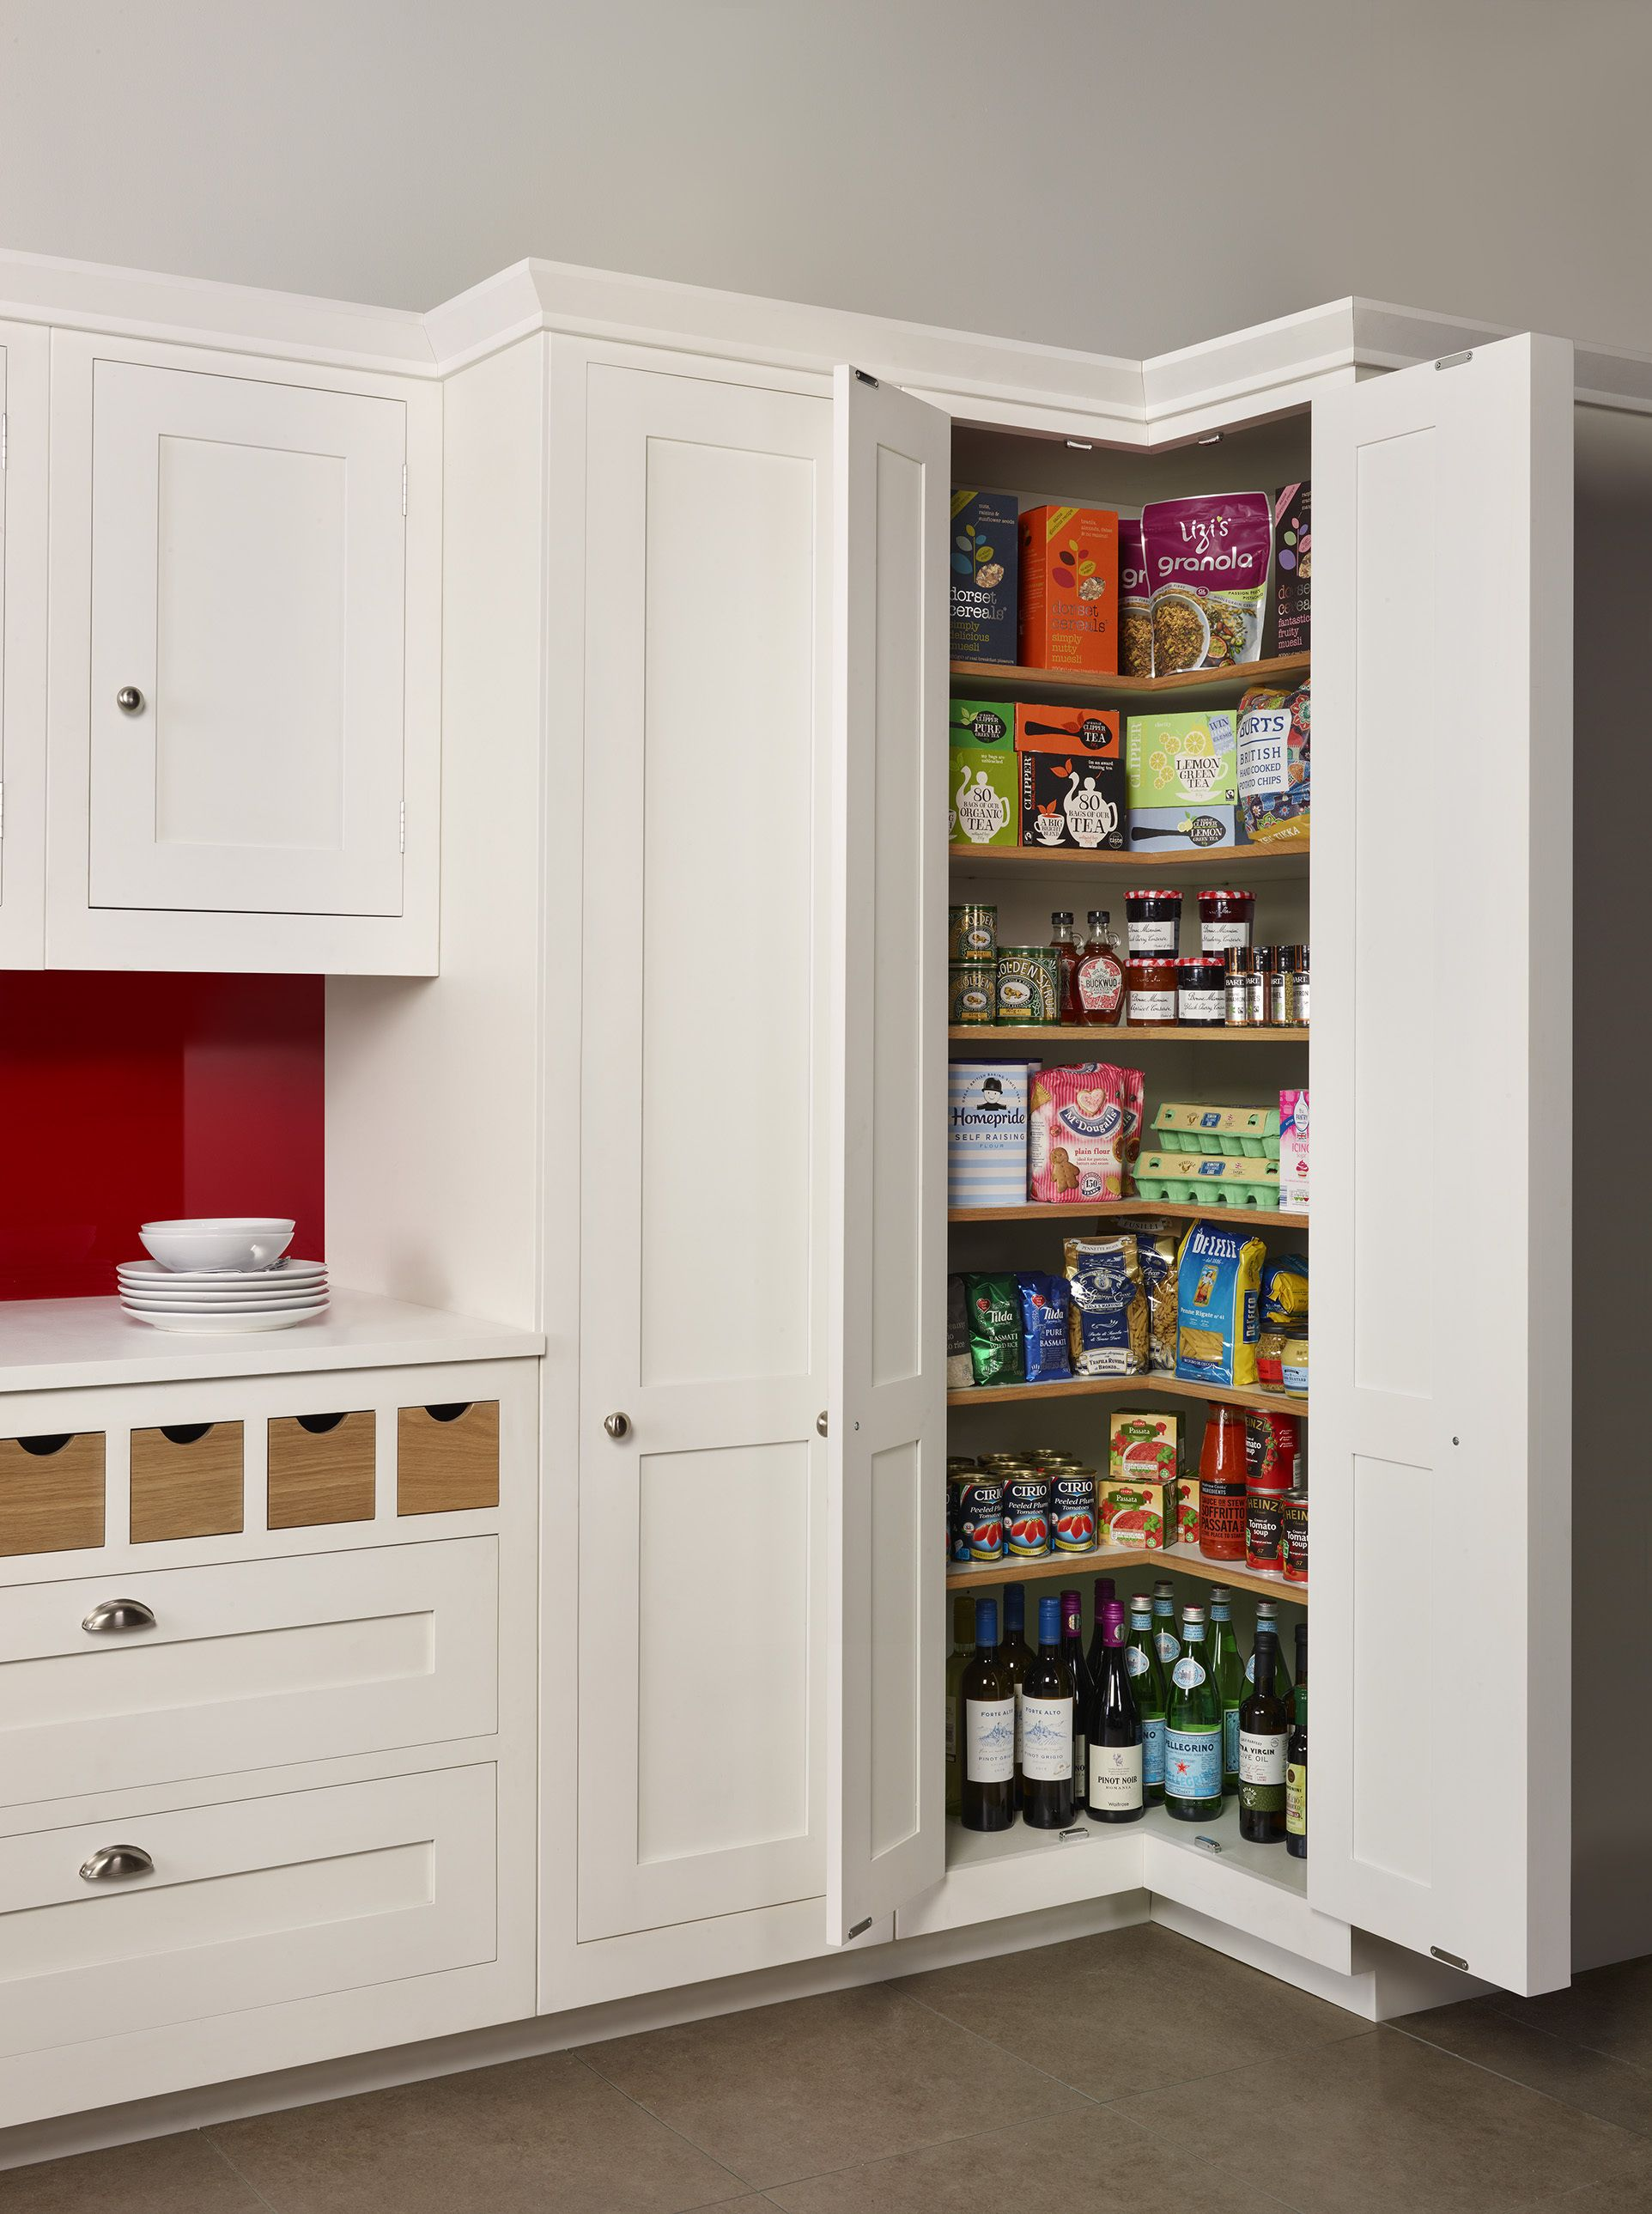 Kitchen Tall Kitchen Pantry Cabinet Corner Pantry In 2020 Corner Pantry Cabinet Kitchen Cabinet Design Kitchen Pantry Design